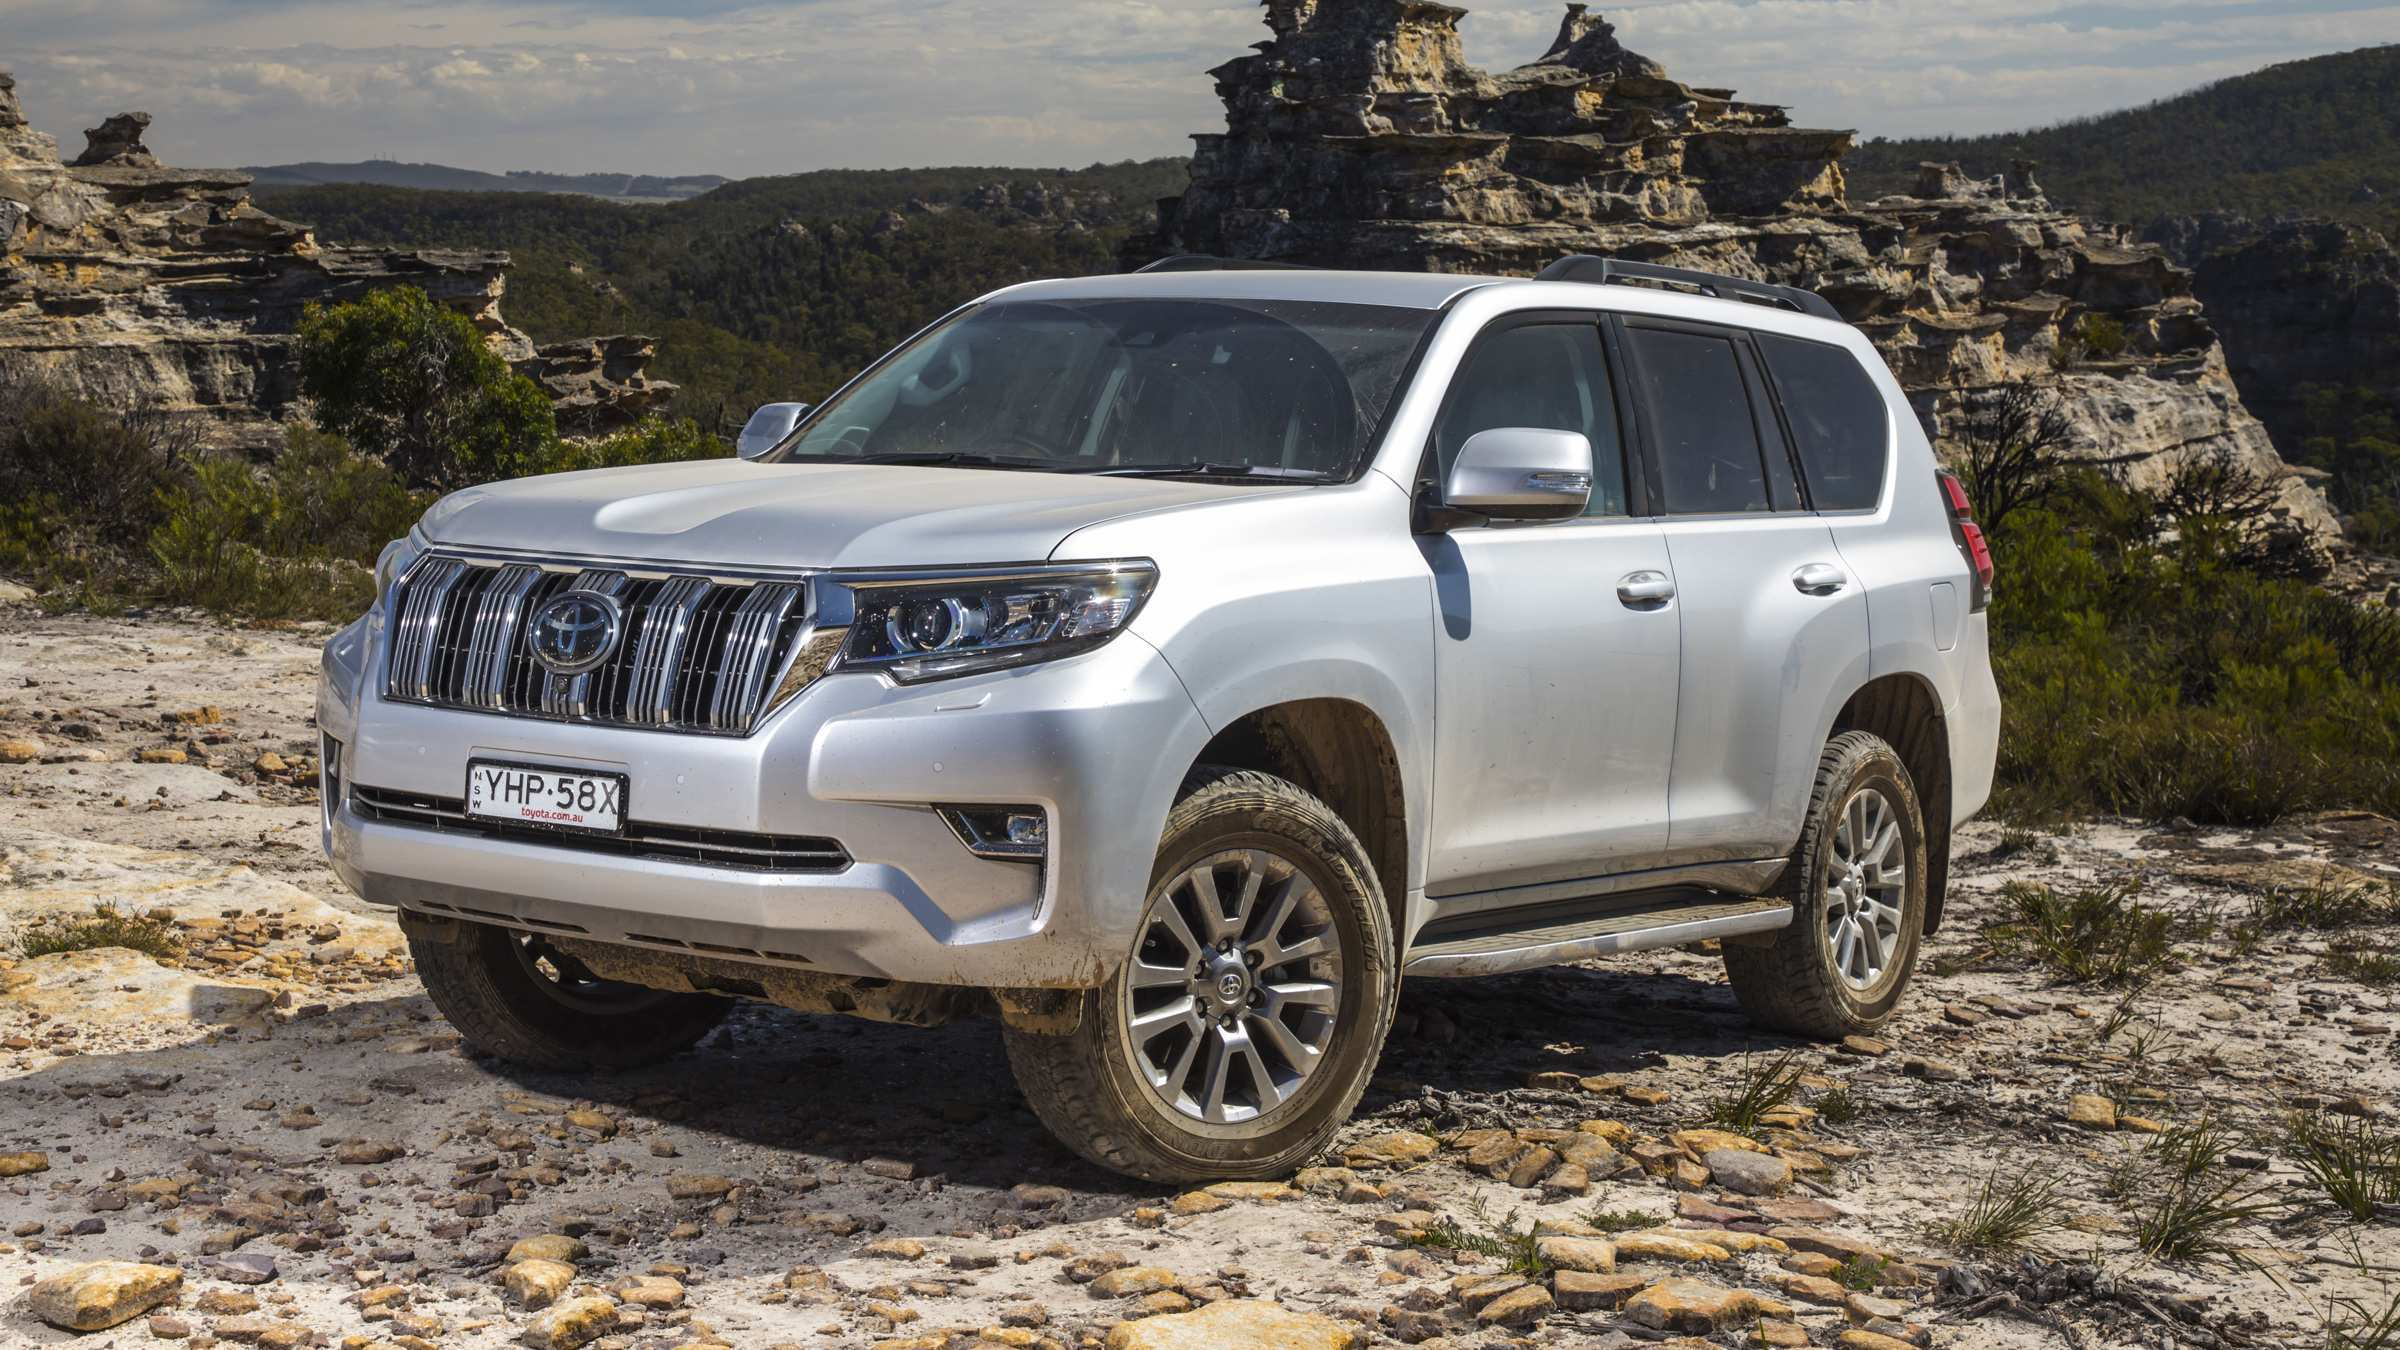 20 The 2019 Toyota Prado History